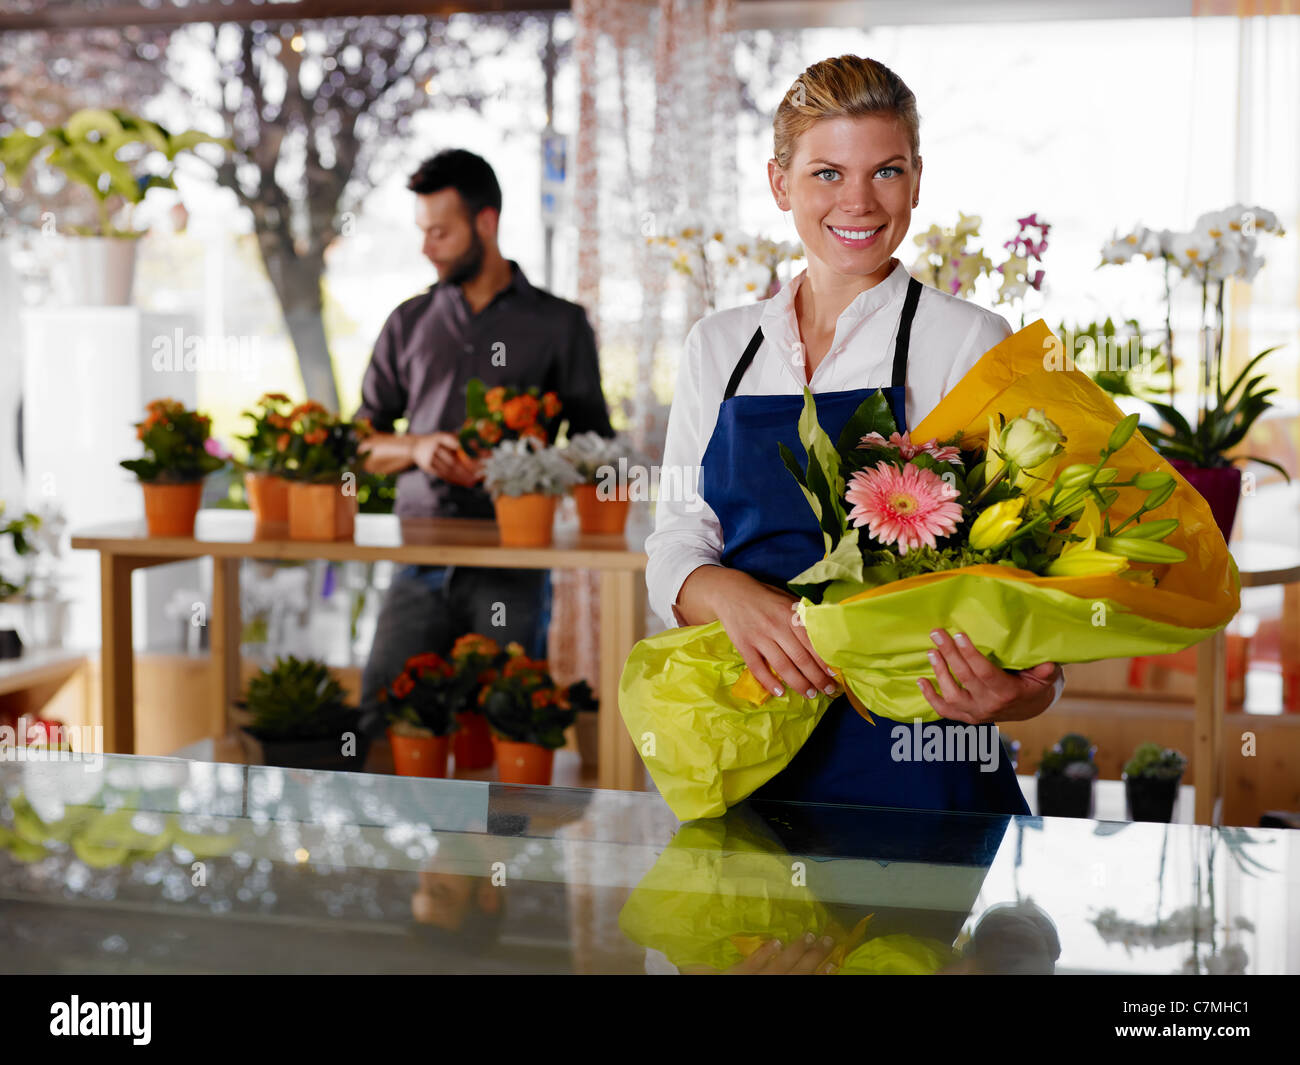 Female sales assistant working as florist and holding bouquet with customer in background. Horizontal shape, waist - Stock Image